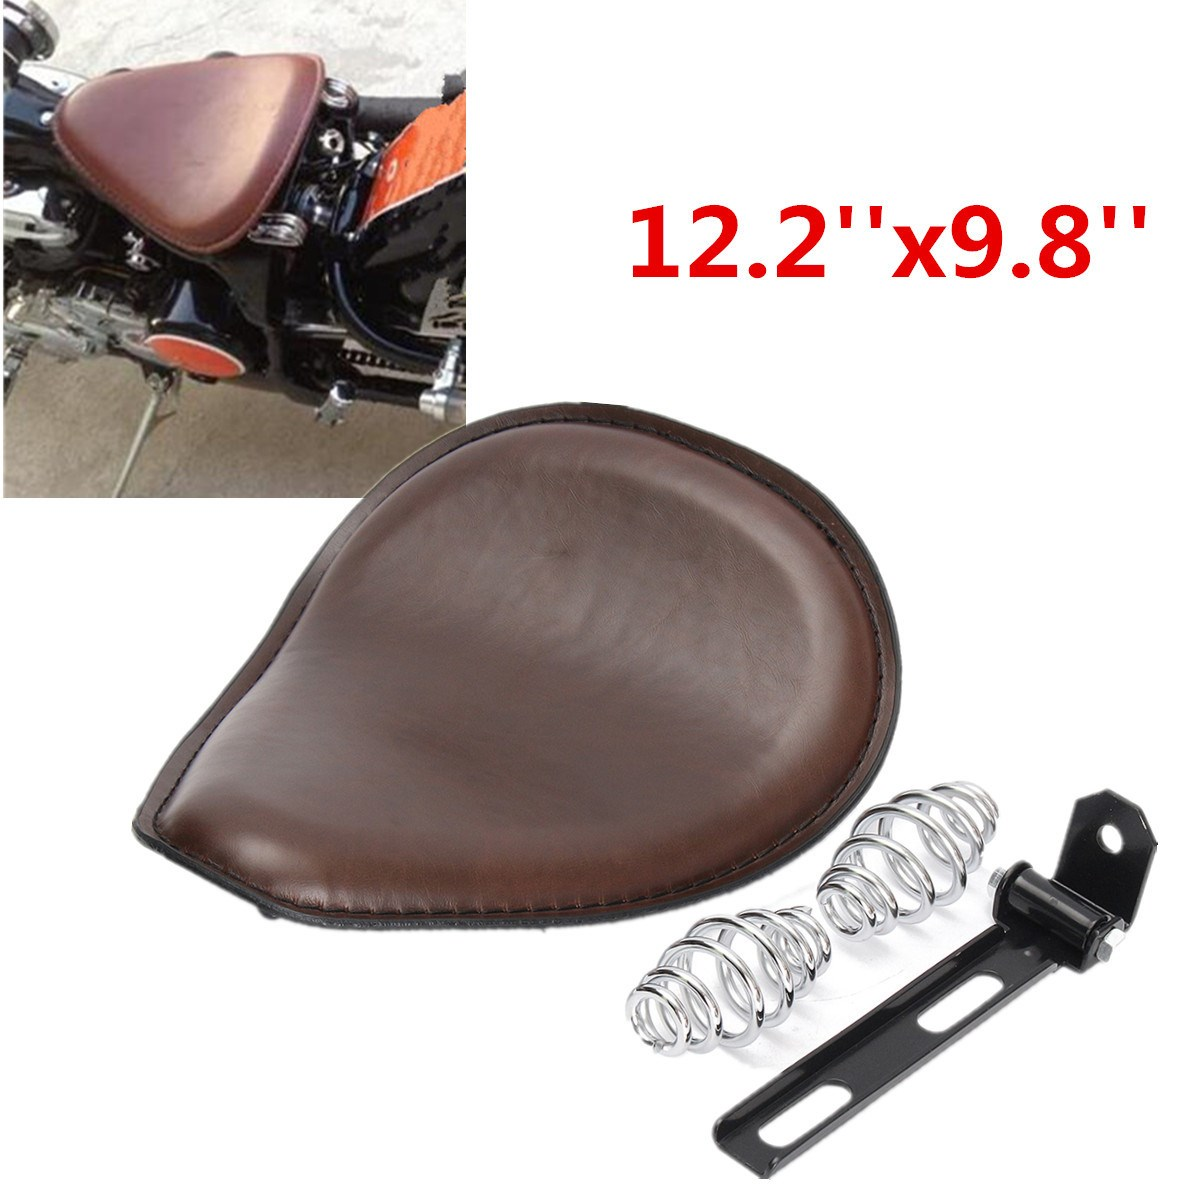 ФОТО 1 Set 12.2 x 9.8 Inch Leather Tuck Roll Motorcycle Seat Retro Cushion For Harley /Bobber /Chopper